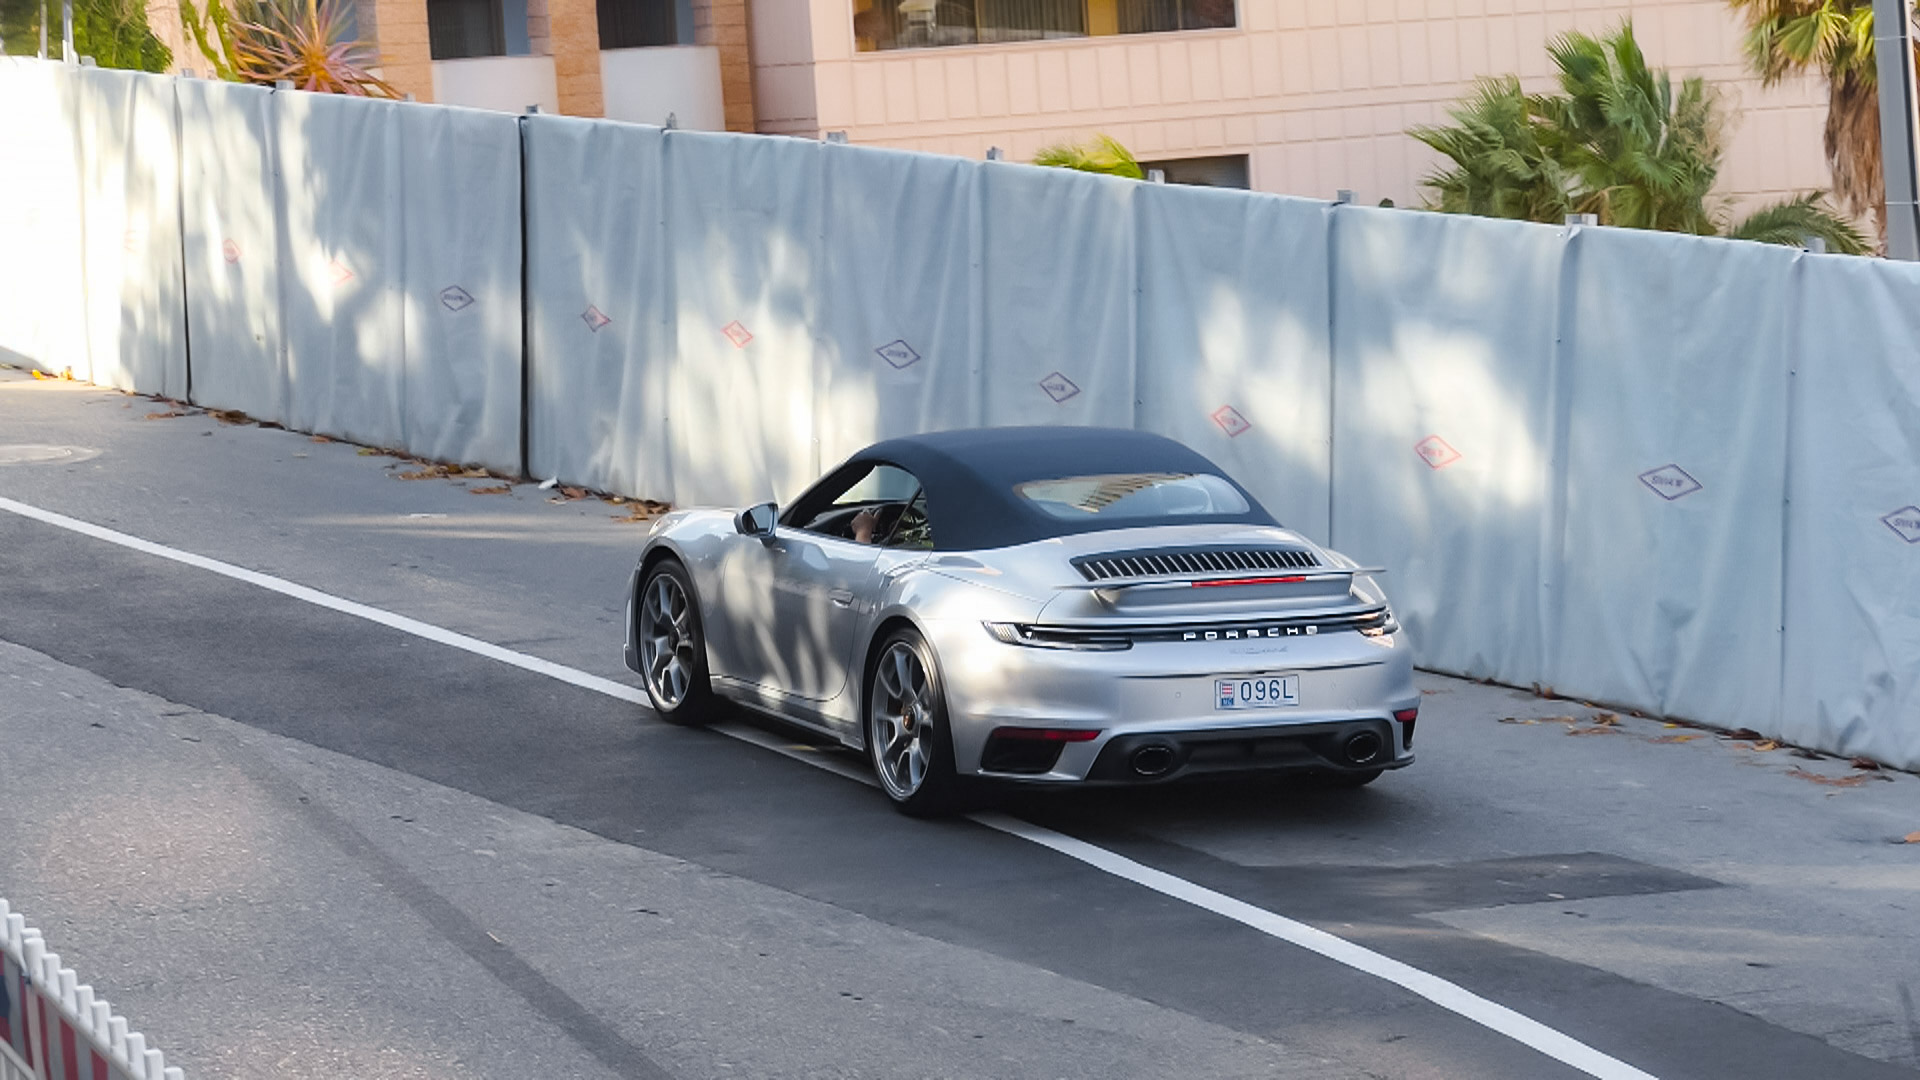 Porsche 992 Turbo S Cabrio - 096L (MC)